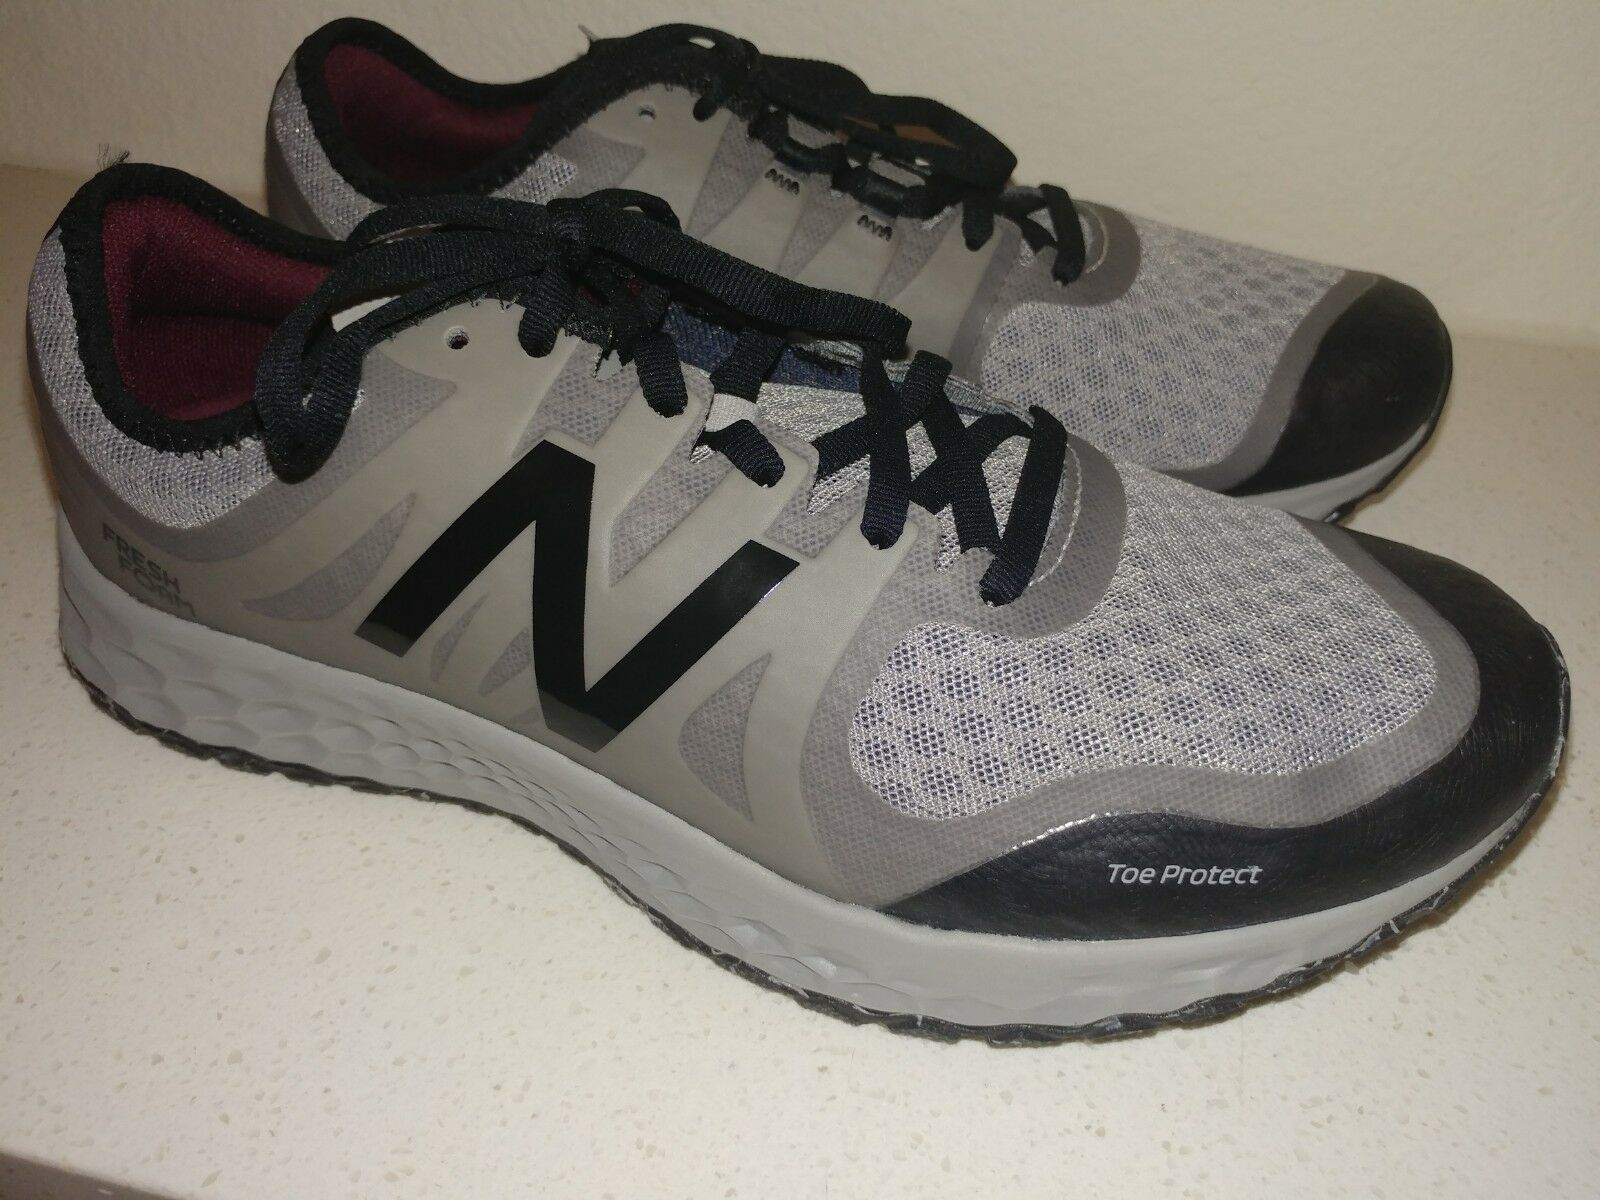 New Balance Fresh Foam Kaymin Trail Running - Brand Brand Brand New in Box - Dimensione 10 22968d